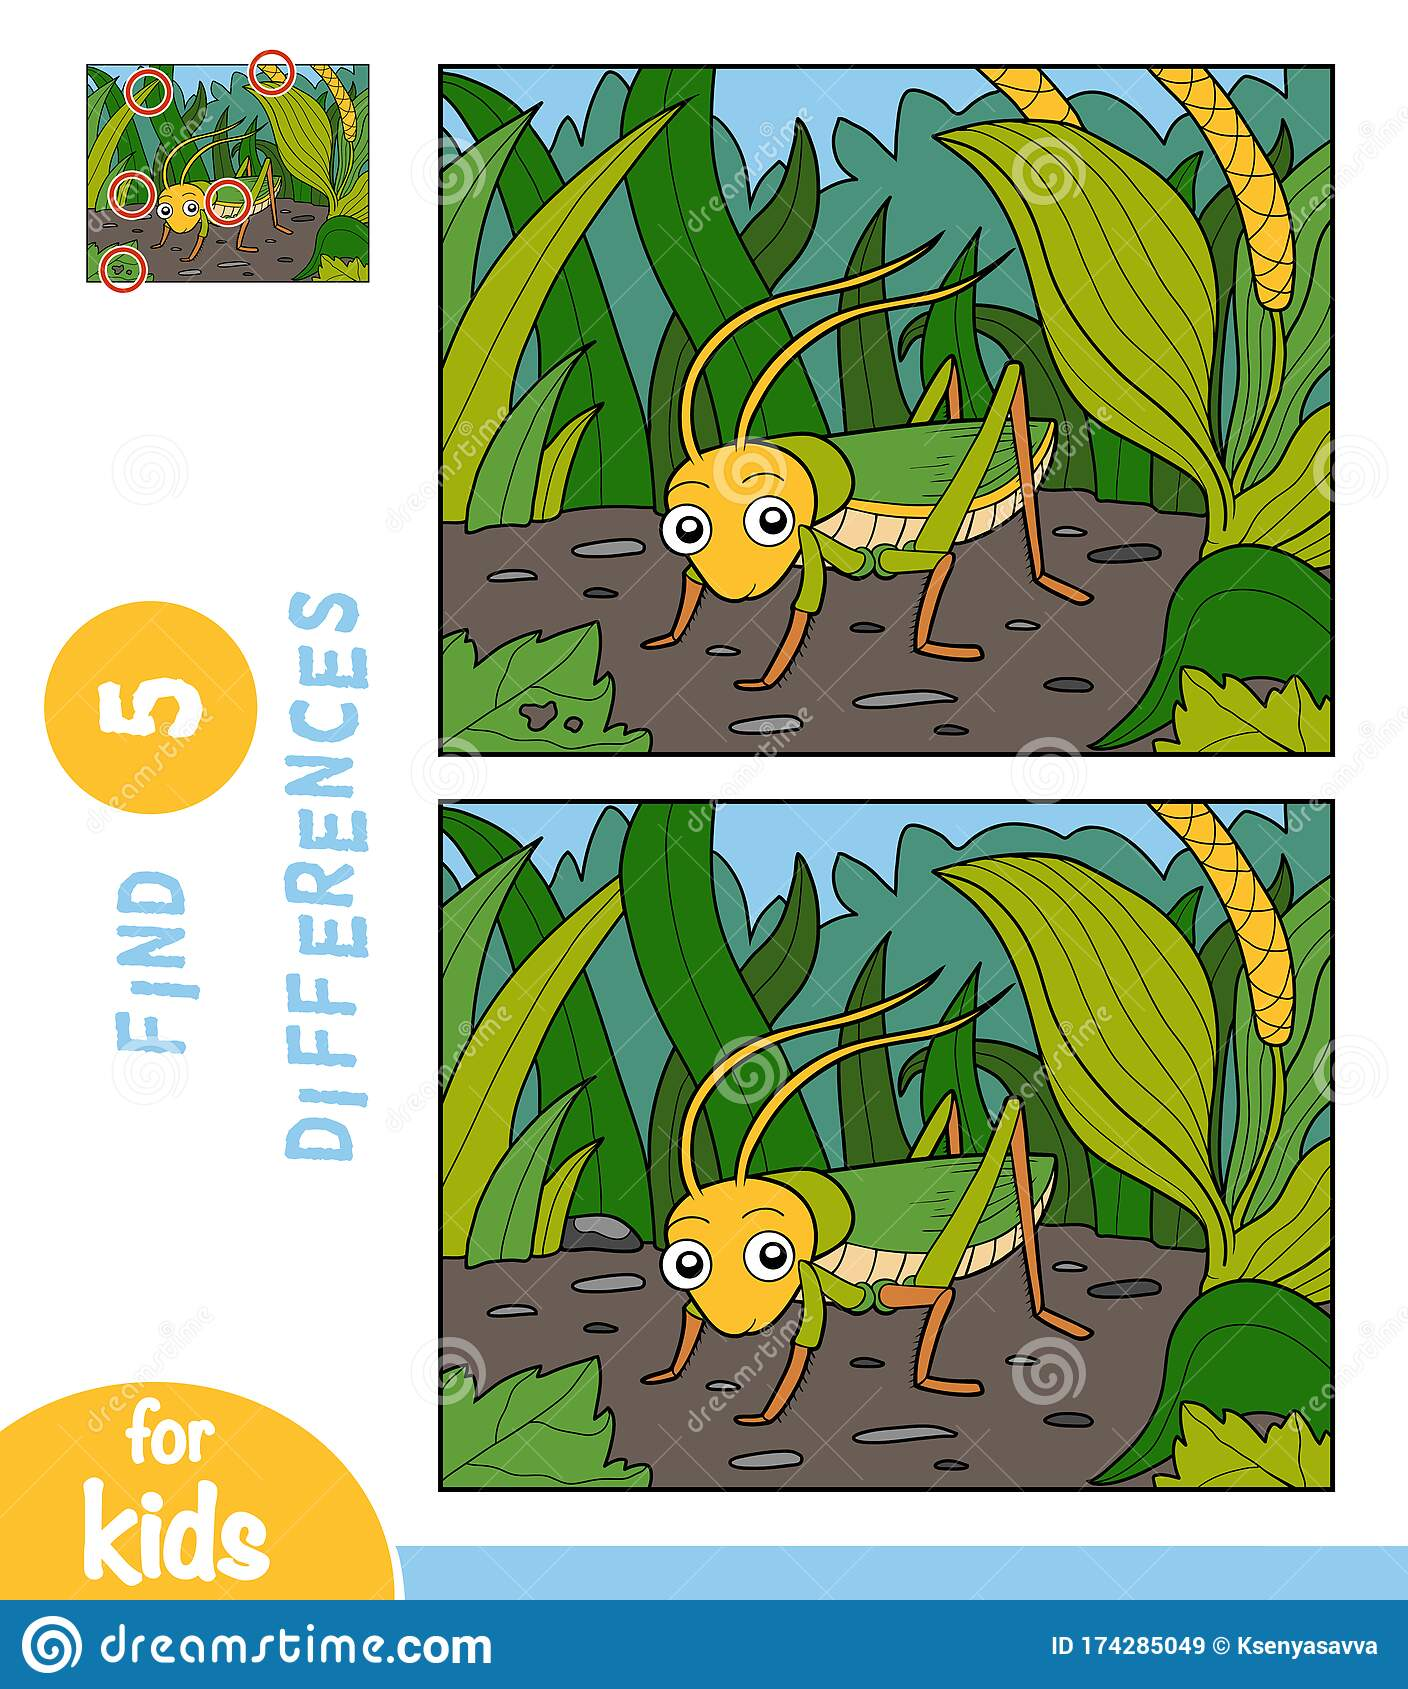 Find Differences Education Game For Children Grasshopper